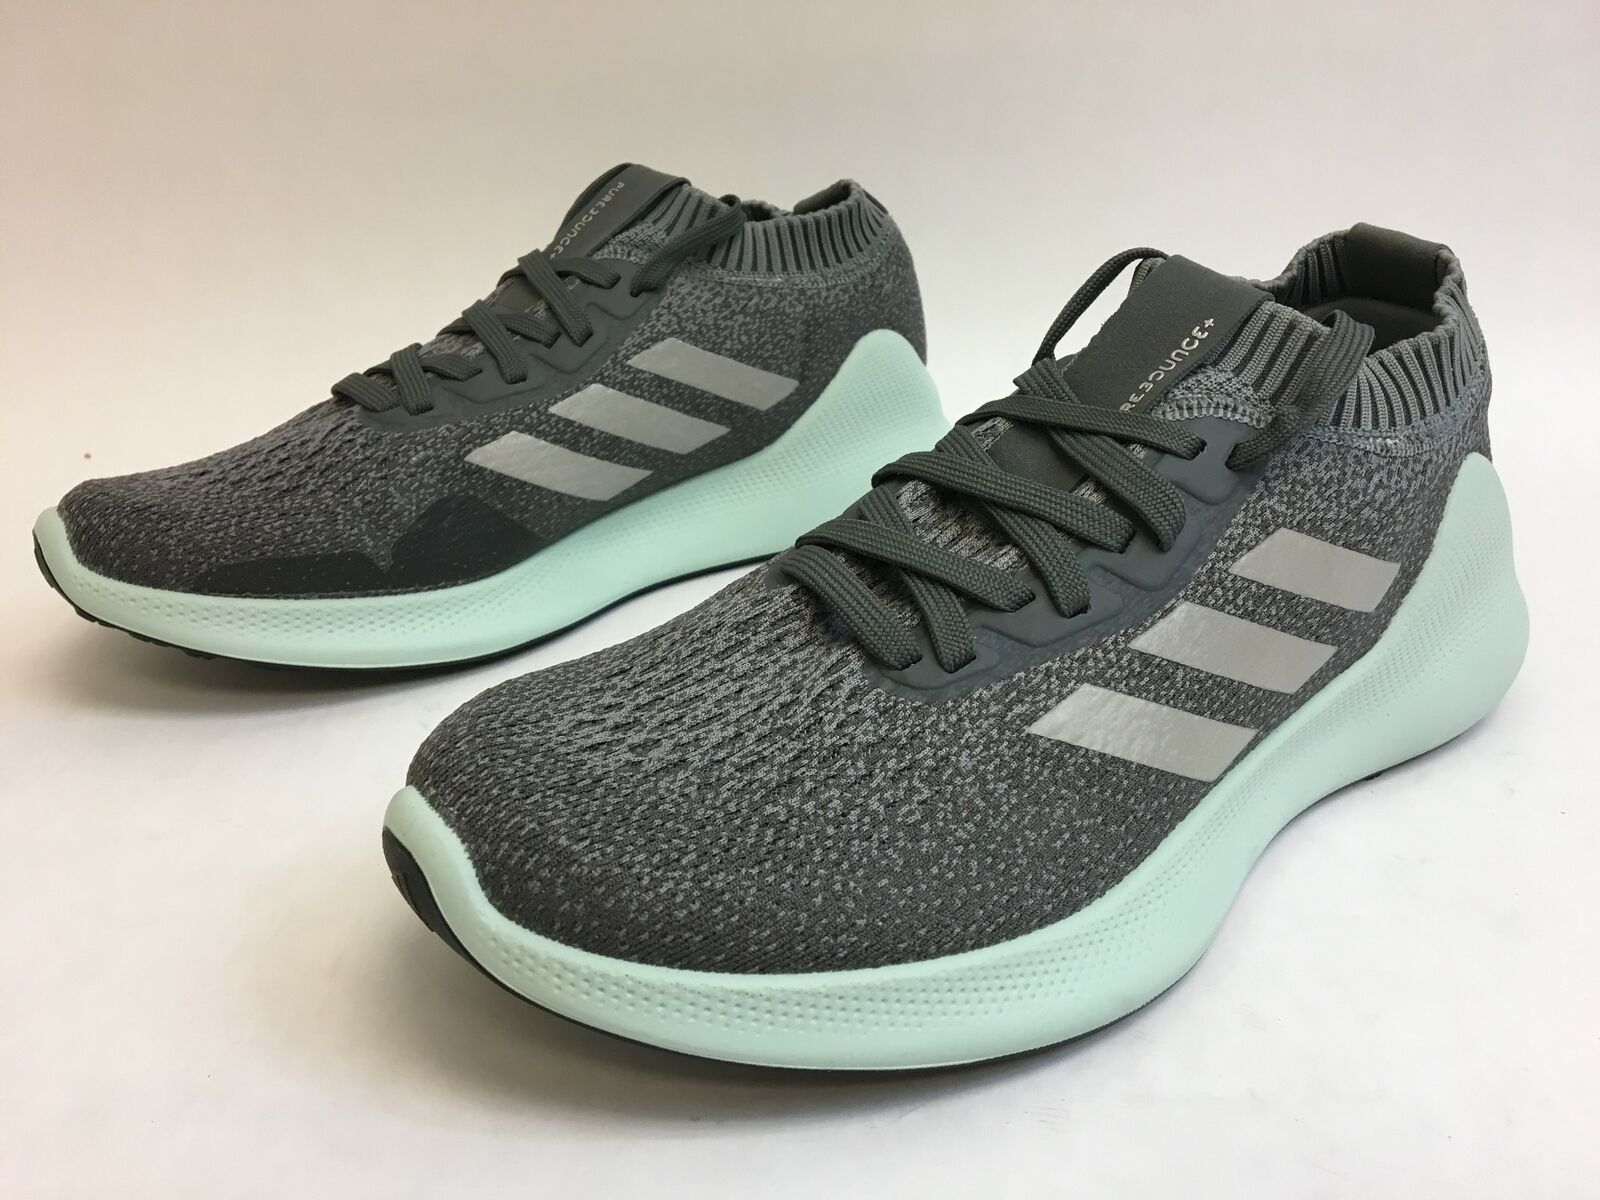 pretty nice 7e133 0572a PureBounce Adidas Grey shoes D96585 Model US 8 Size Running ...